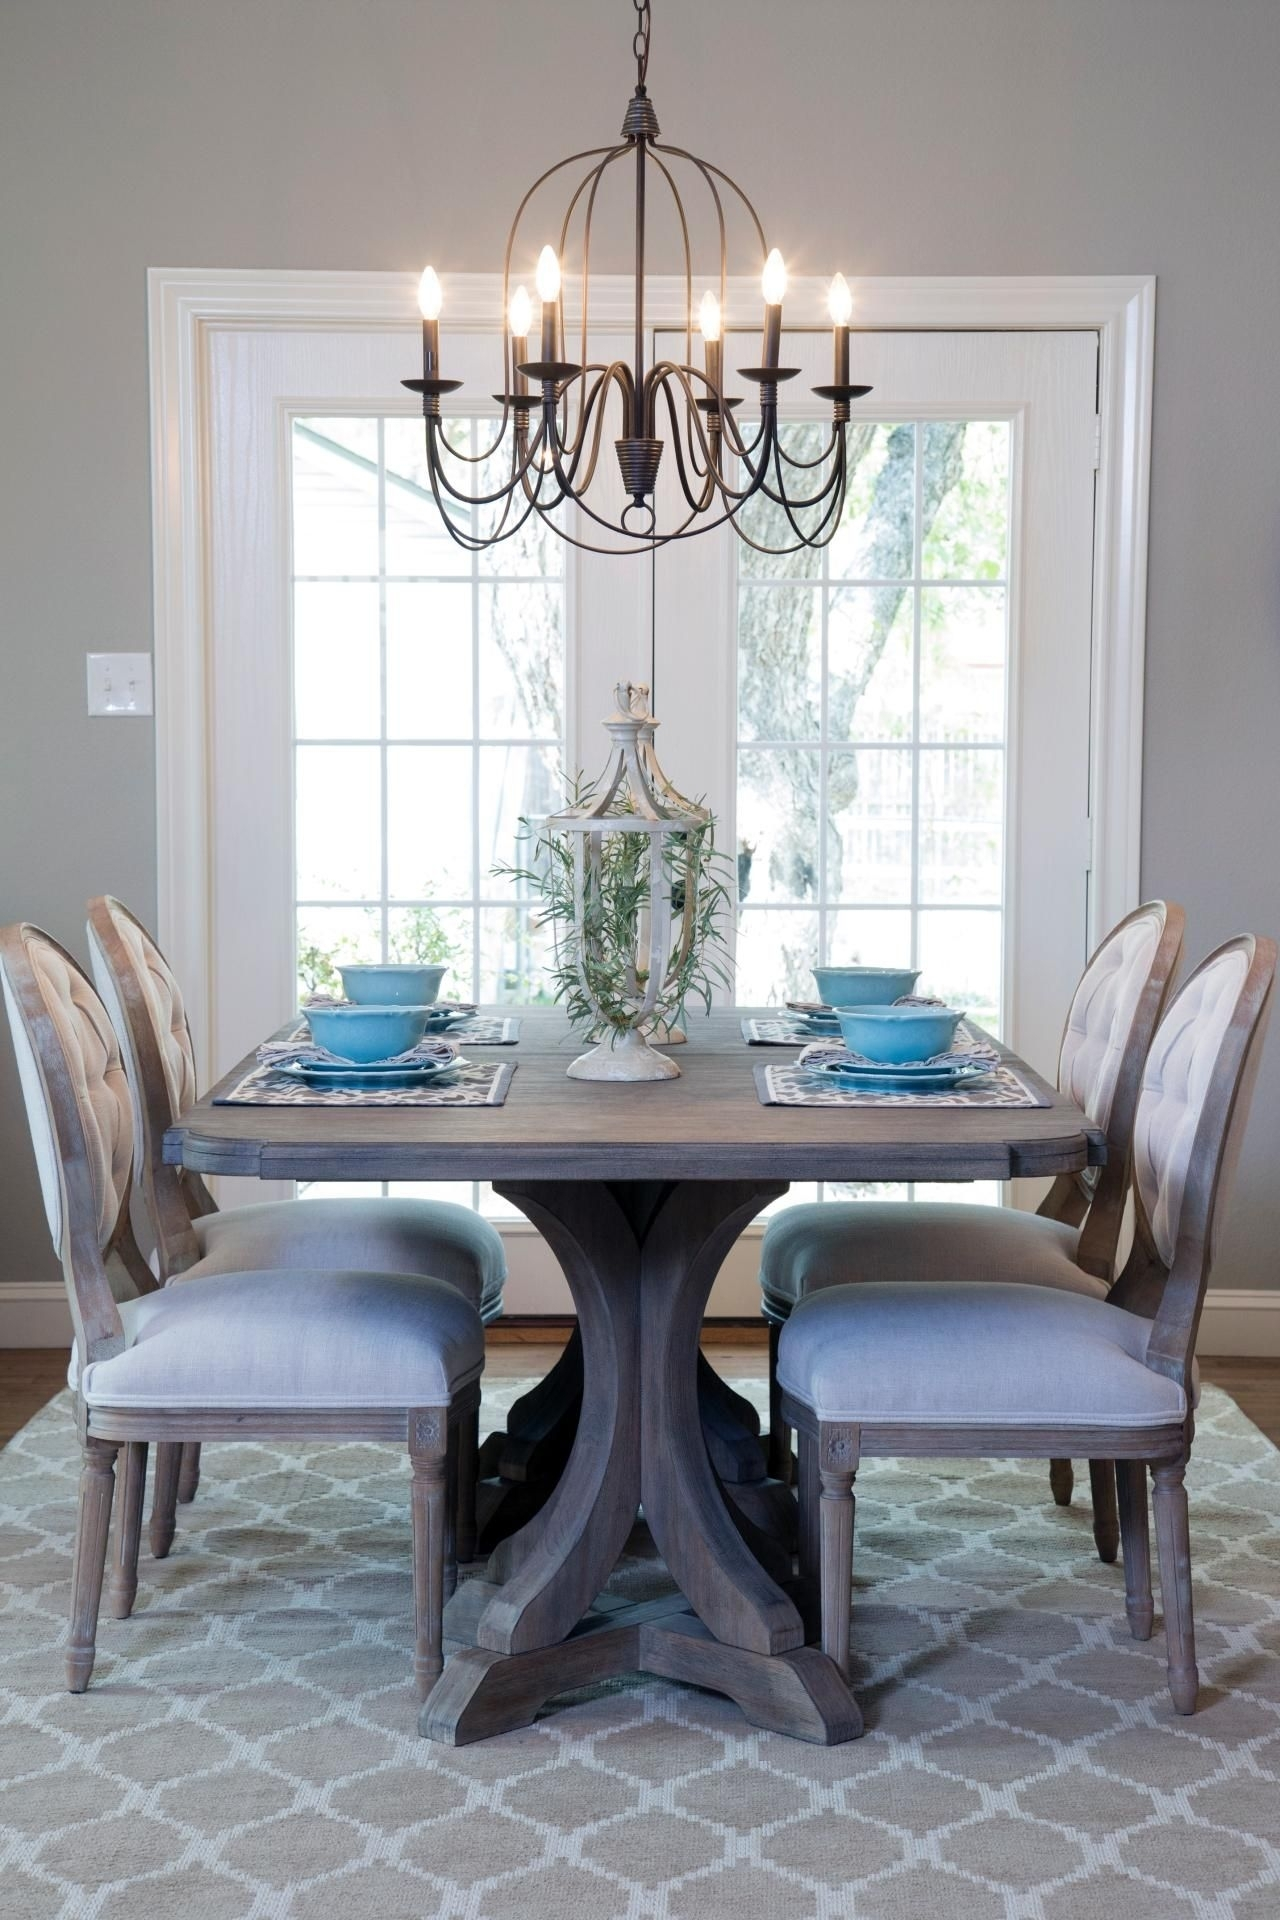 Excellent Dining Room Chandelier 17 Good Beautiful Small Ideas In Living Room Table Lights (#7 of 15)